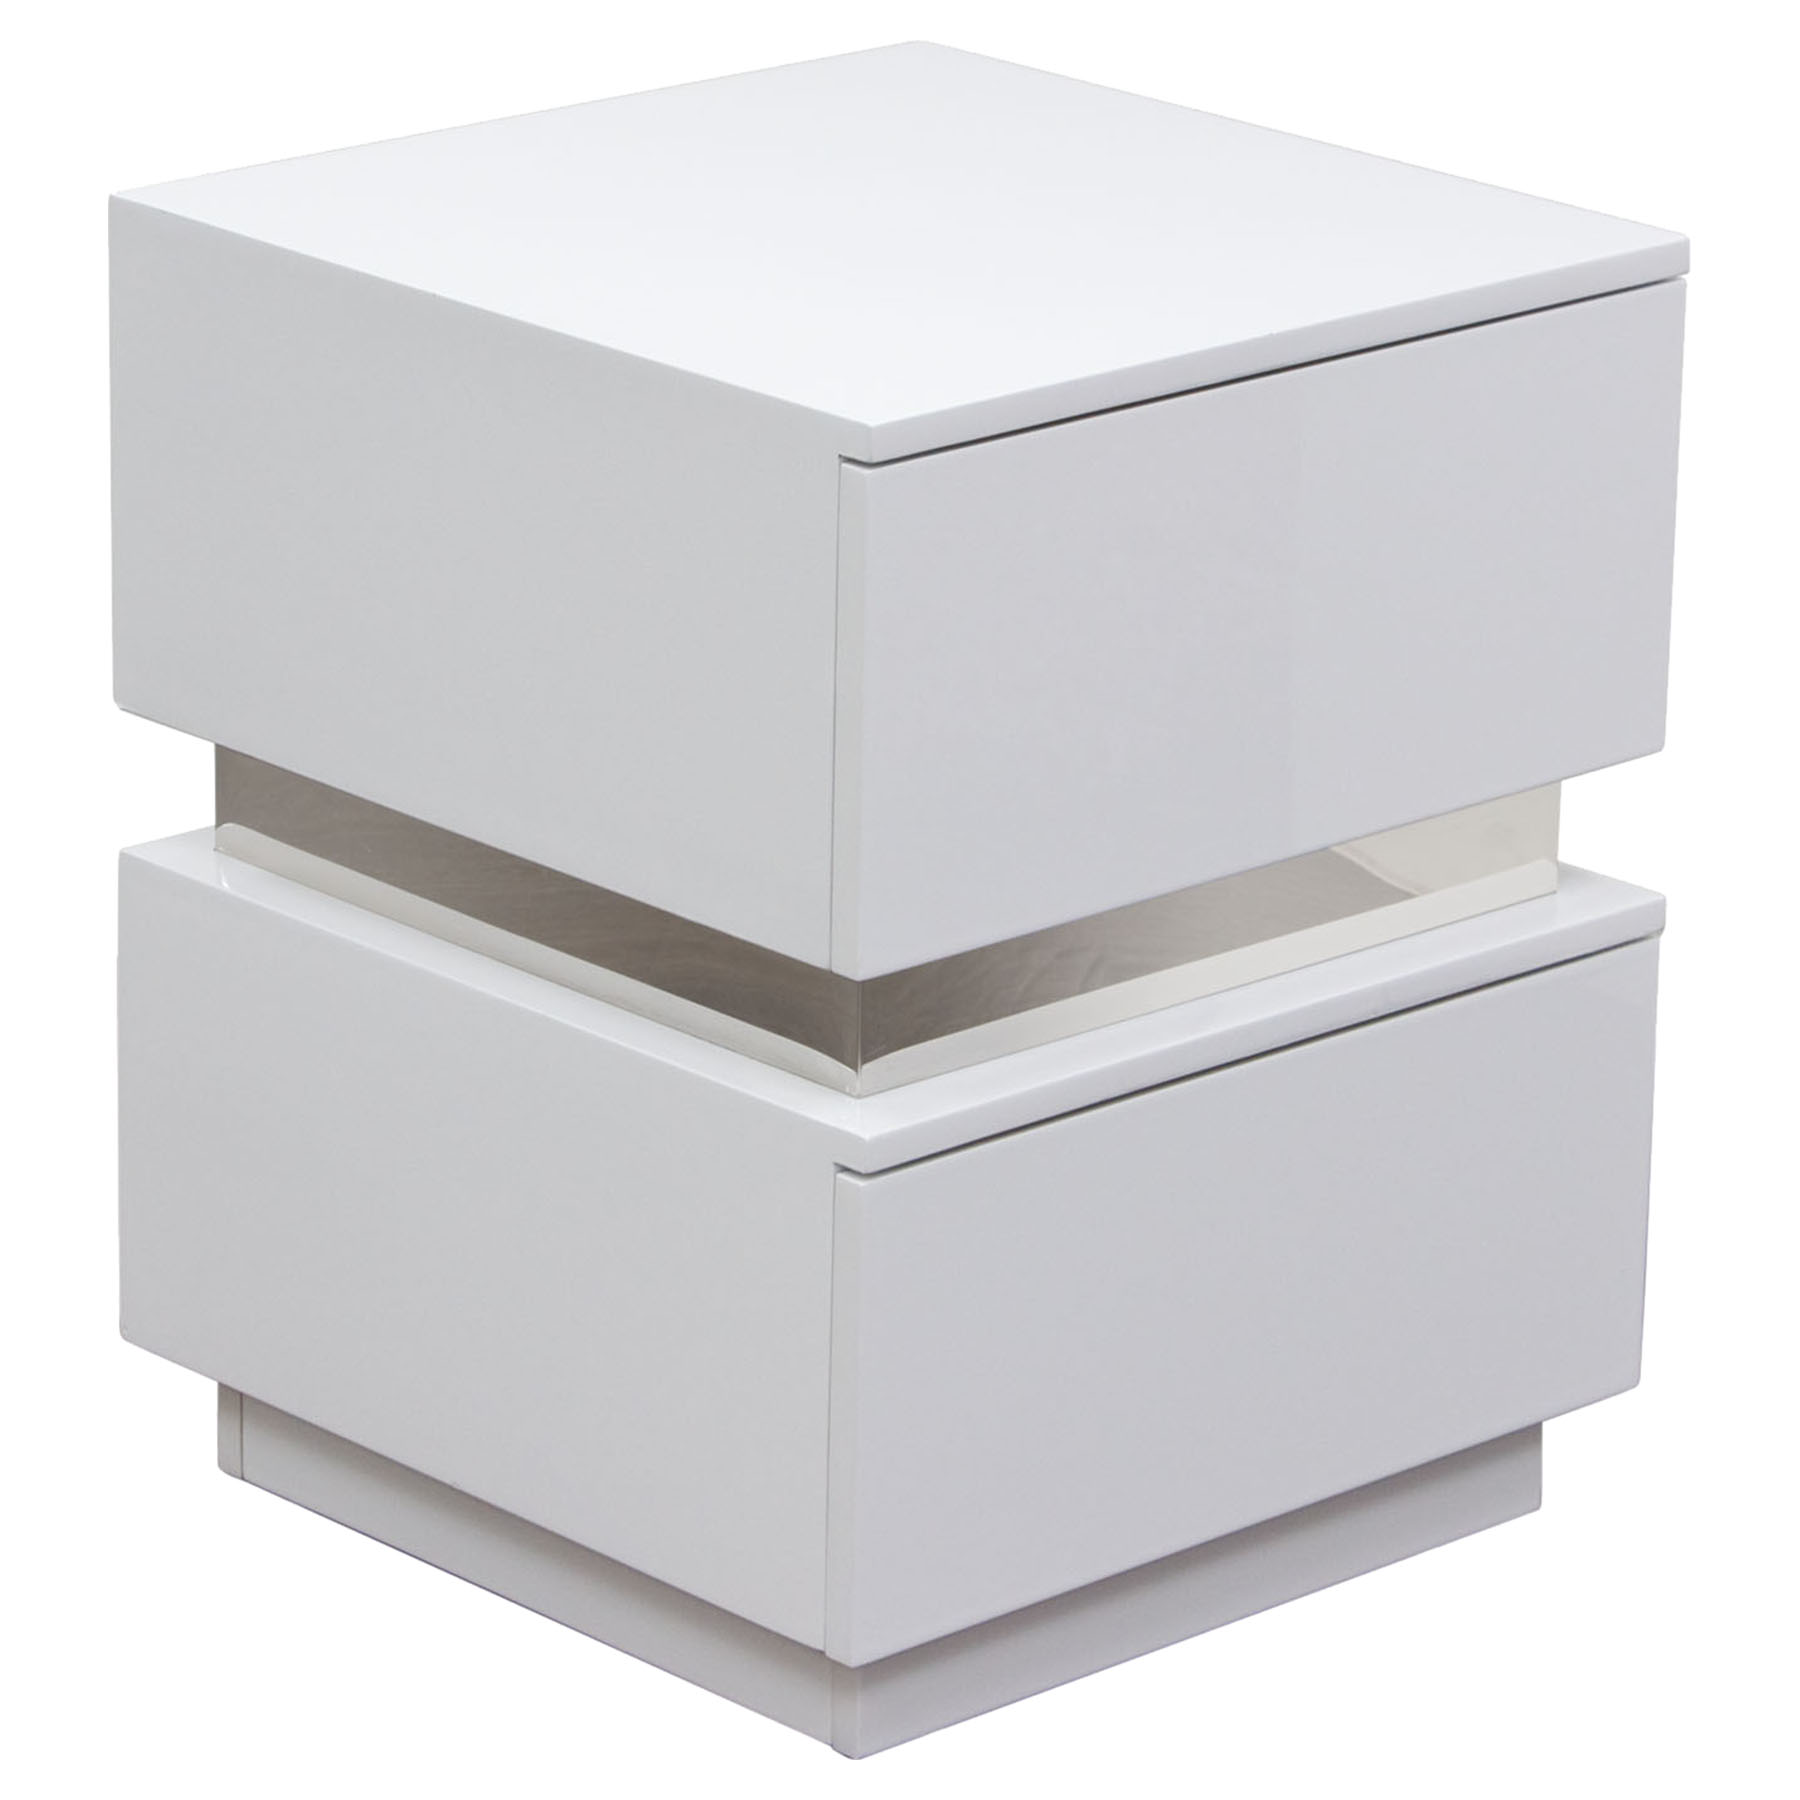 elle drawers accent table high gloss white dcg ellenswh living spaces end tables acrylic coffee glass patio with umbrella hole closeout furniture nesting inch legs person square